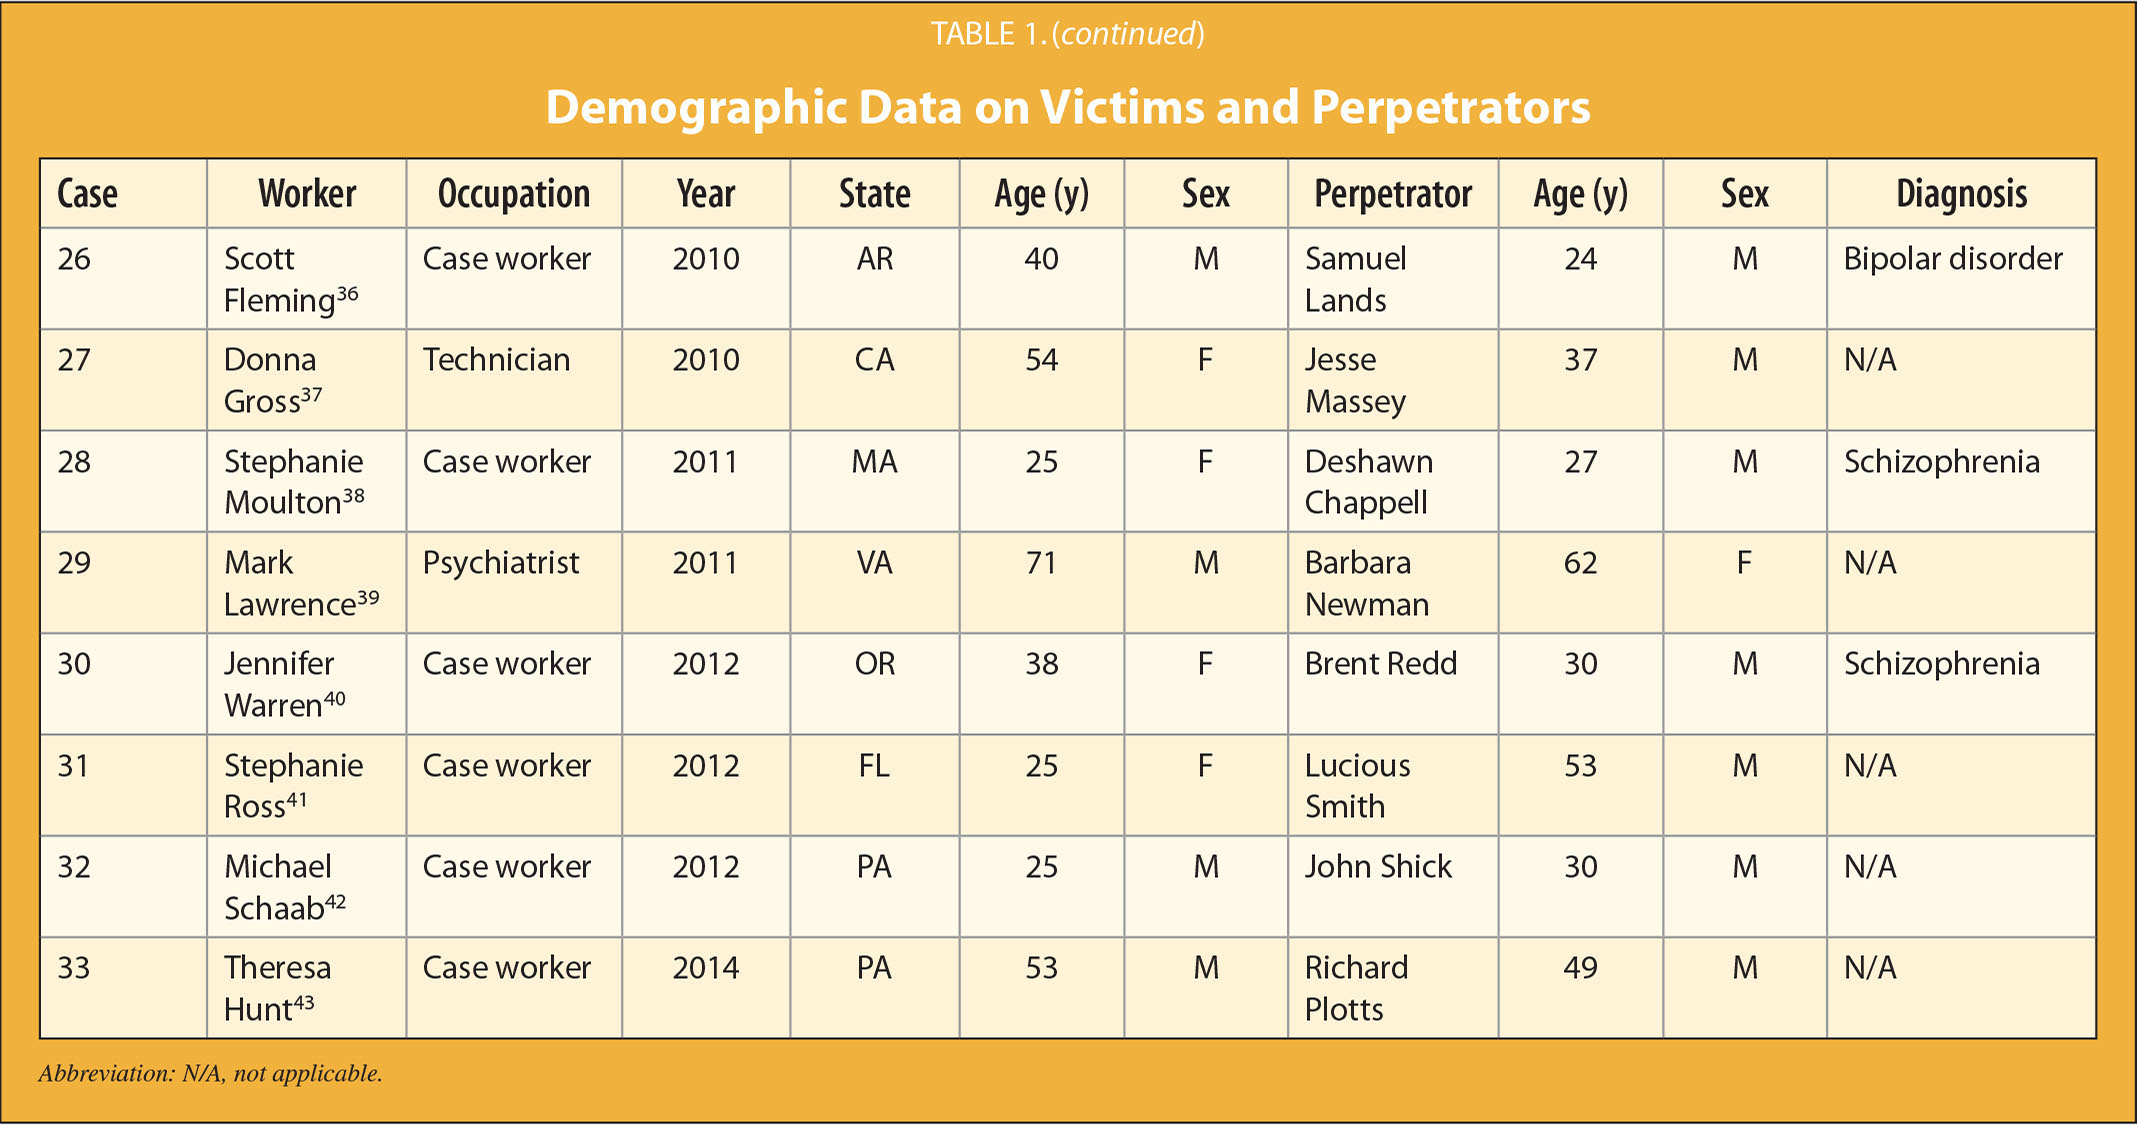 Demographic Data on Victims and Perpetrators